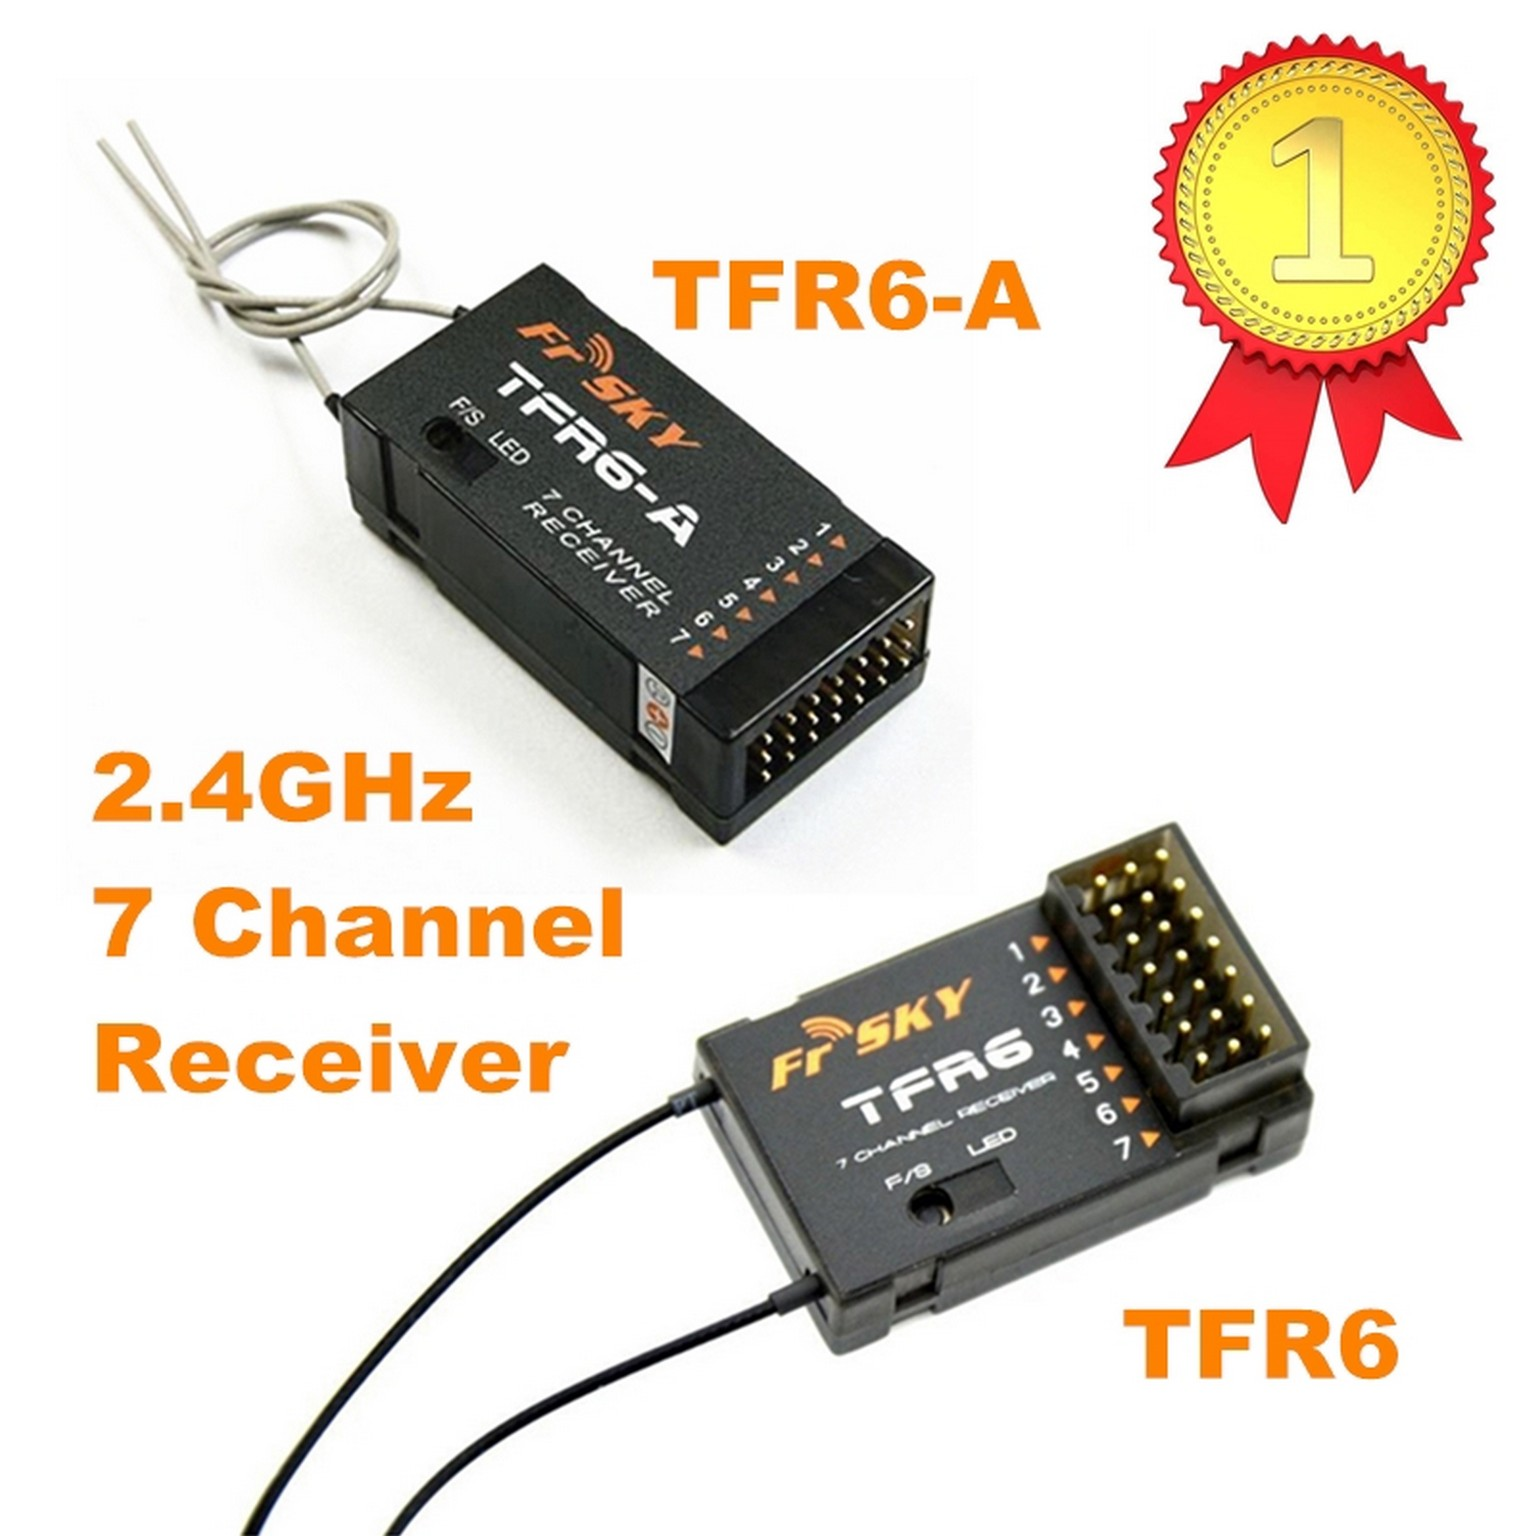 FrSky 7CH  Receiver TFR6/TFR6-A (Futaba FASST Compatible) for Hobby RC Plane